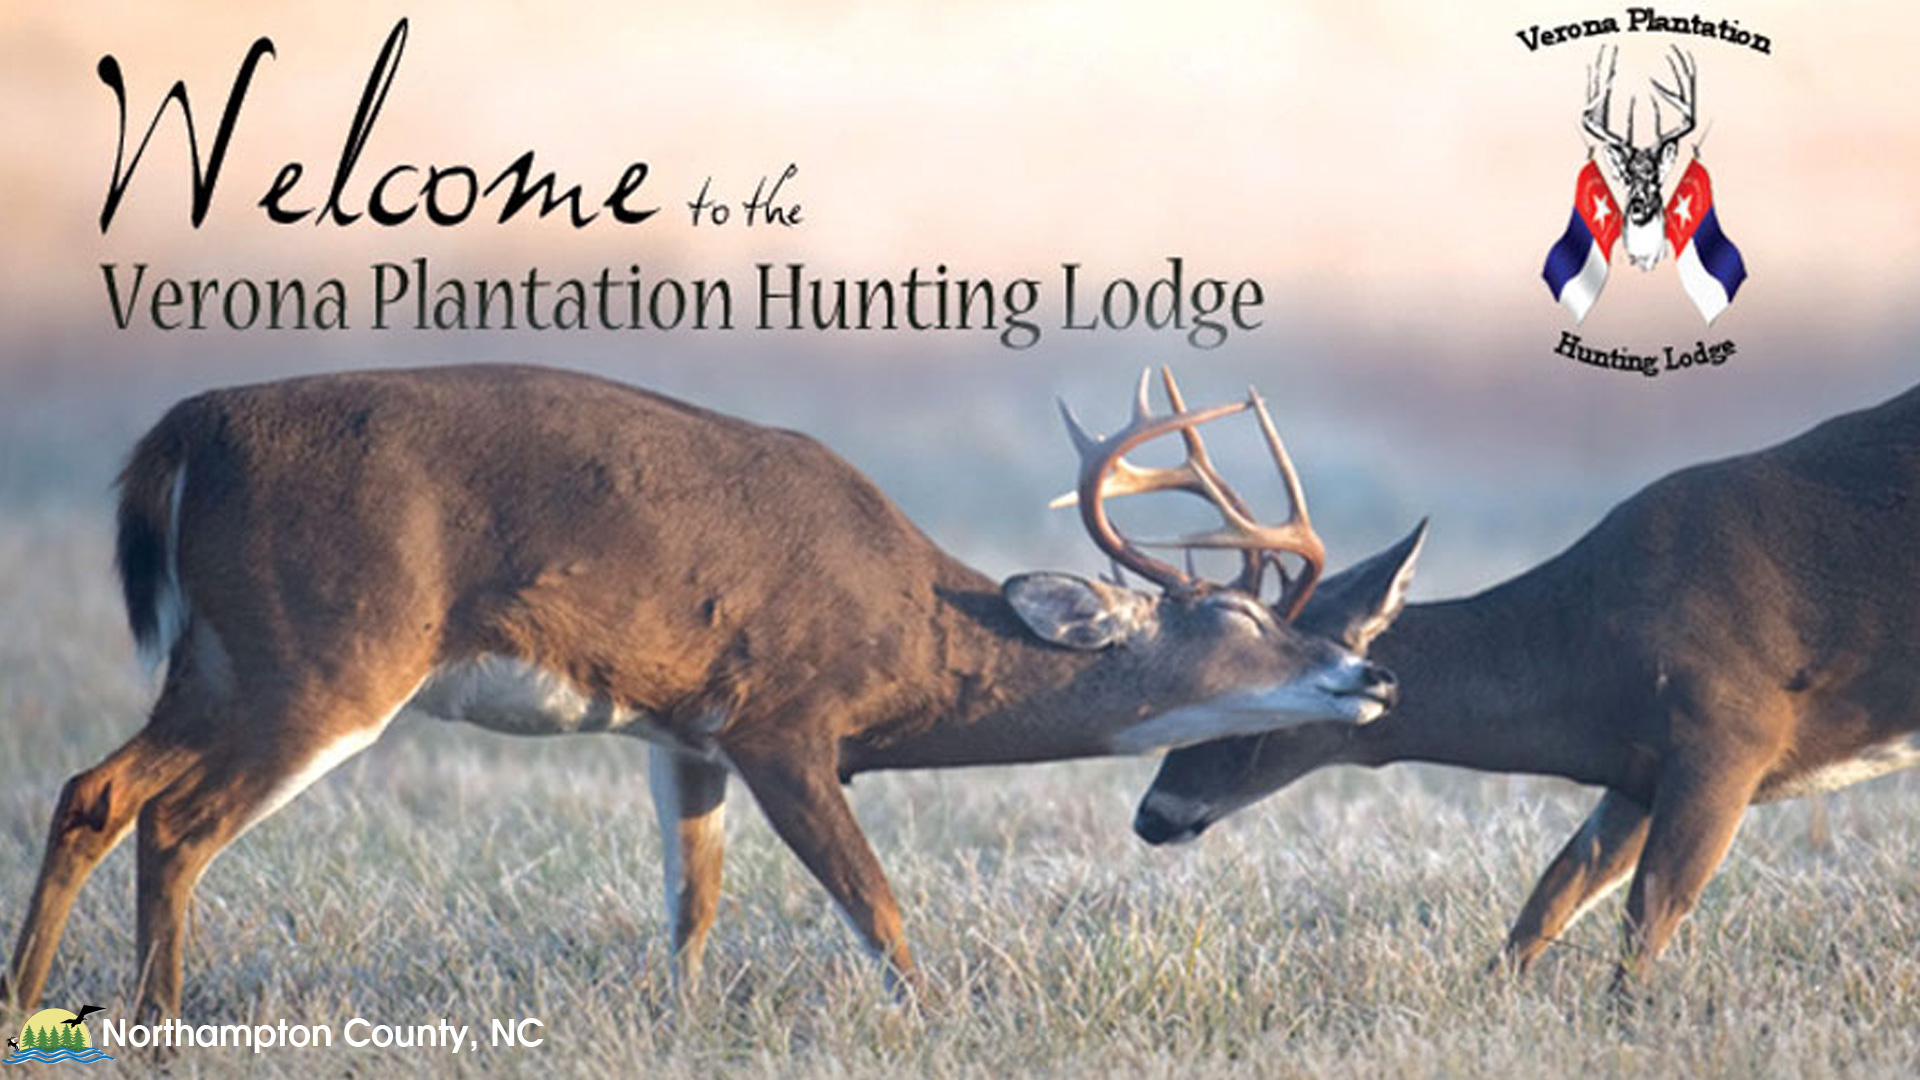 Verona Plantation Hunting Lodge in Jackson, NC